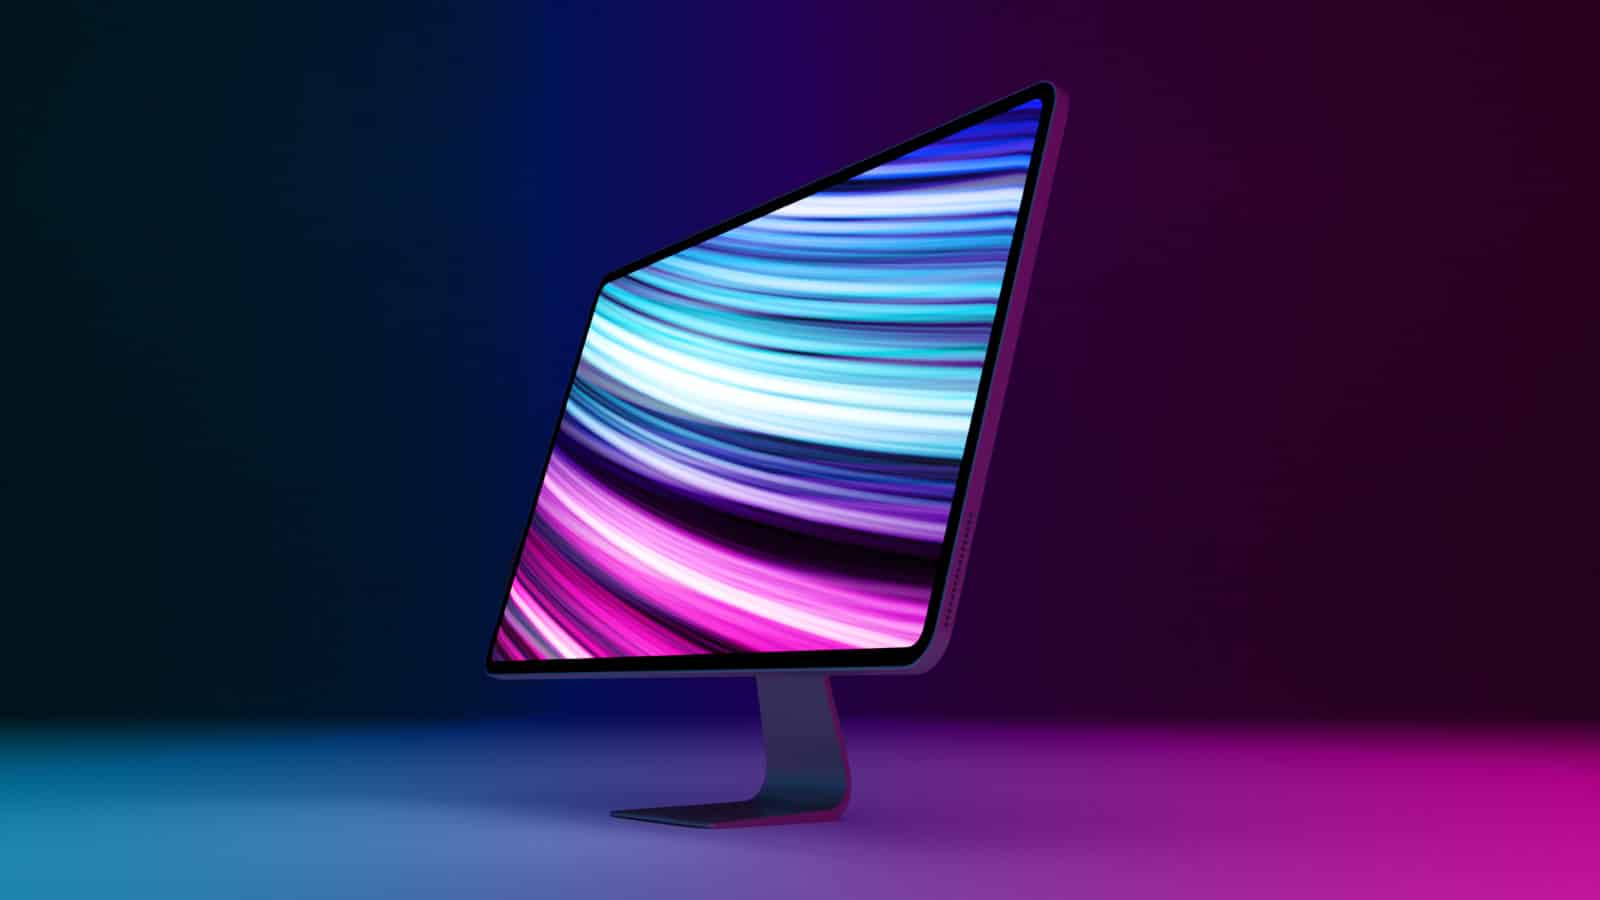 Apple to release 24″ iMac in Q4 2020, says Kuo